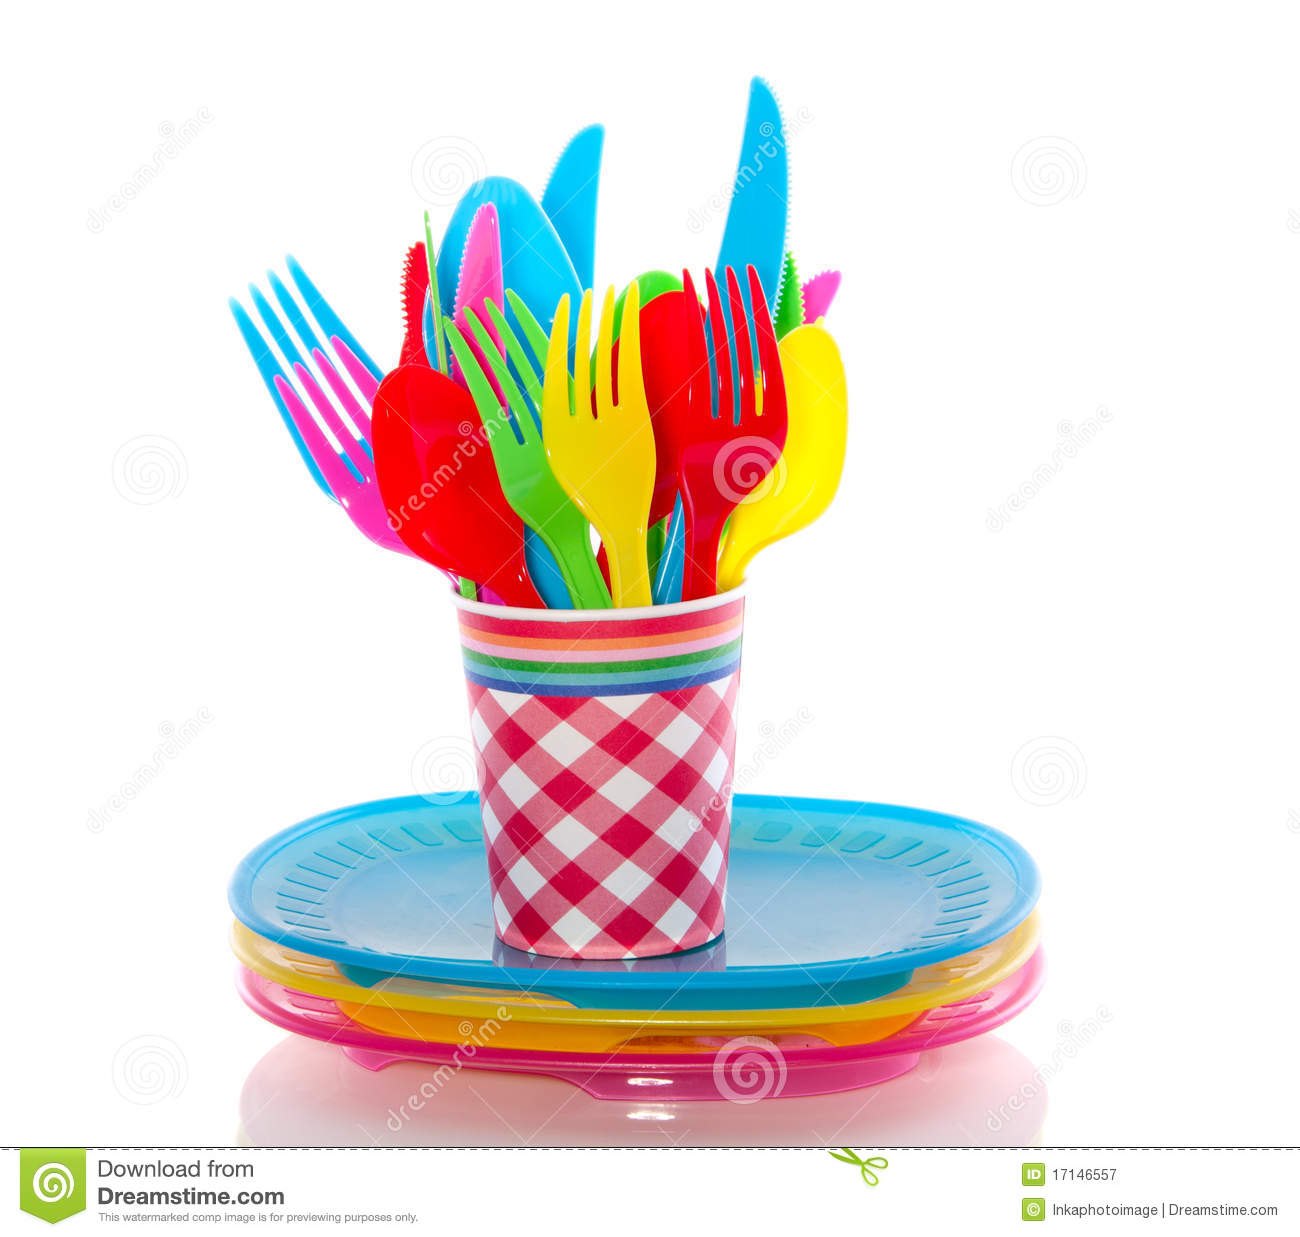 Colorful Plastic Cutlery Royalty Free Stock Photography